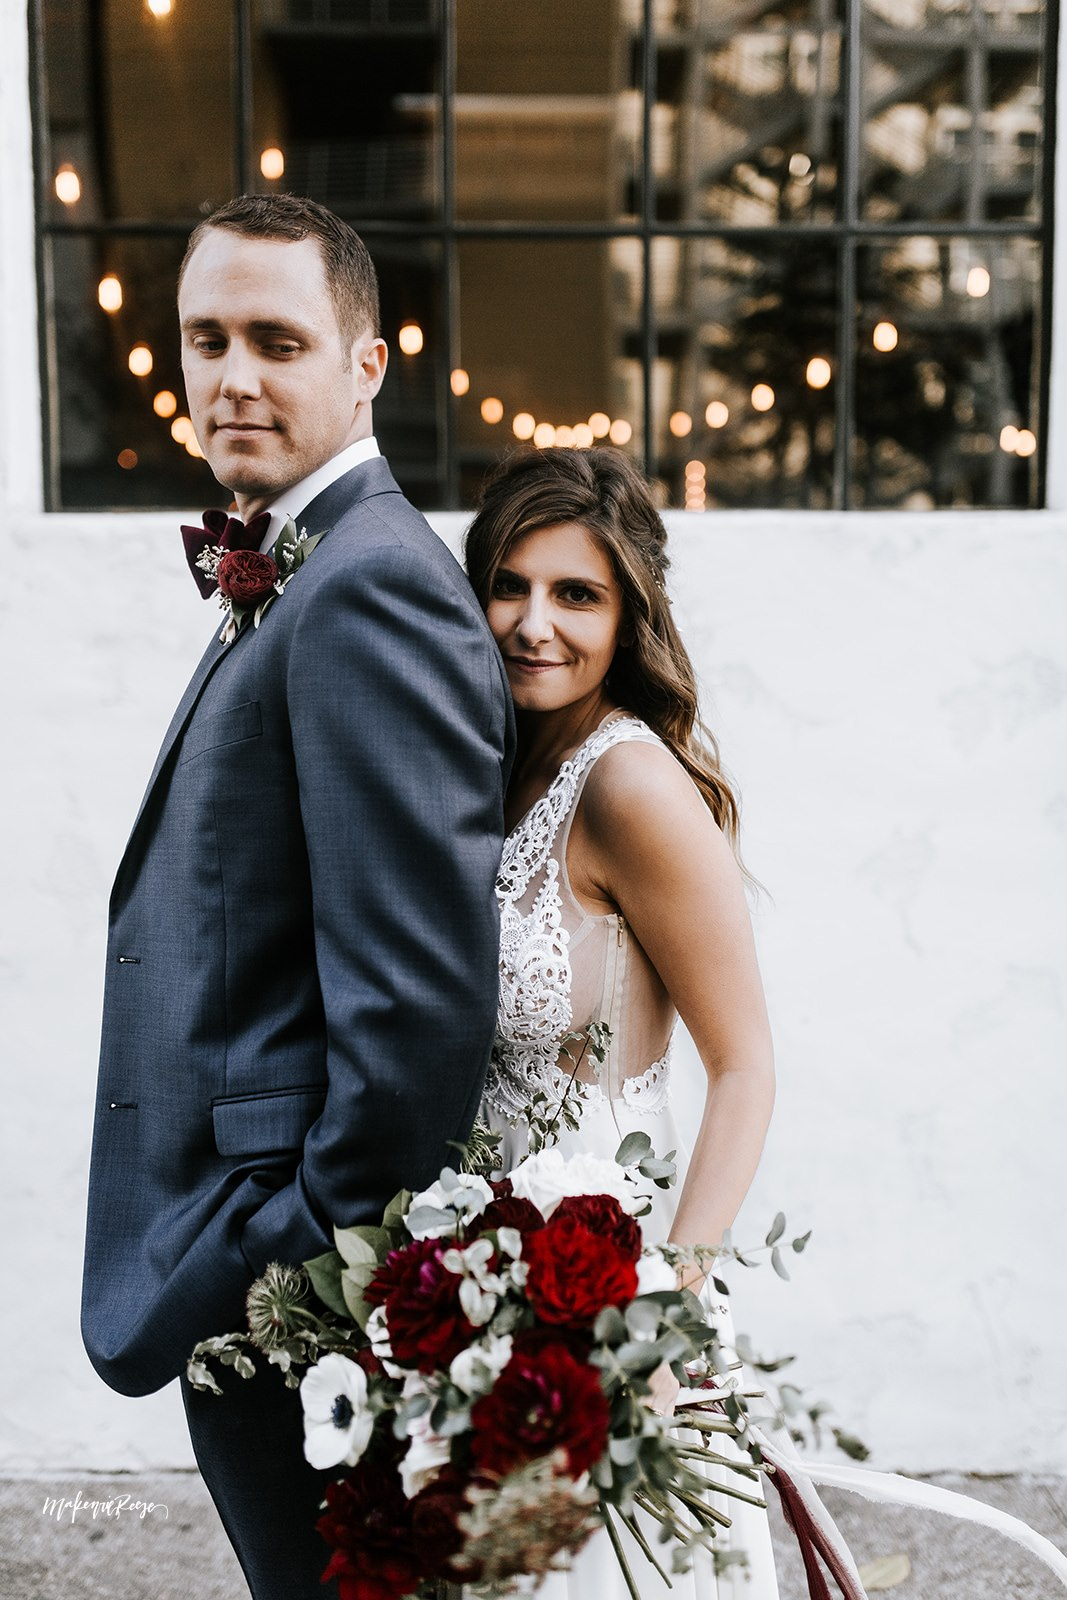 Jenna + James - View Gallery